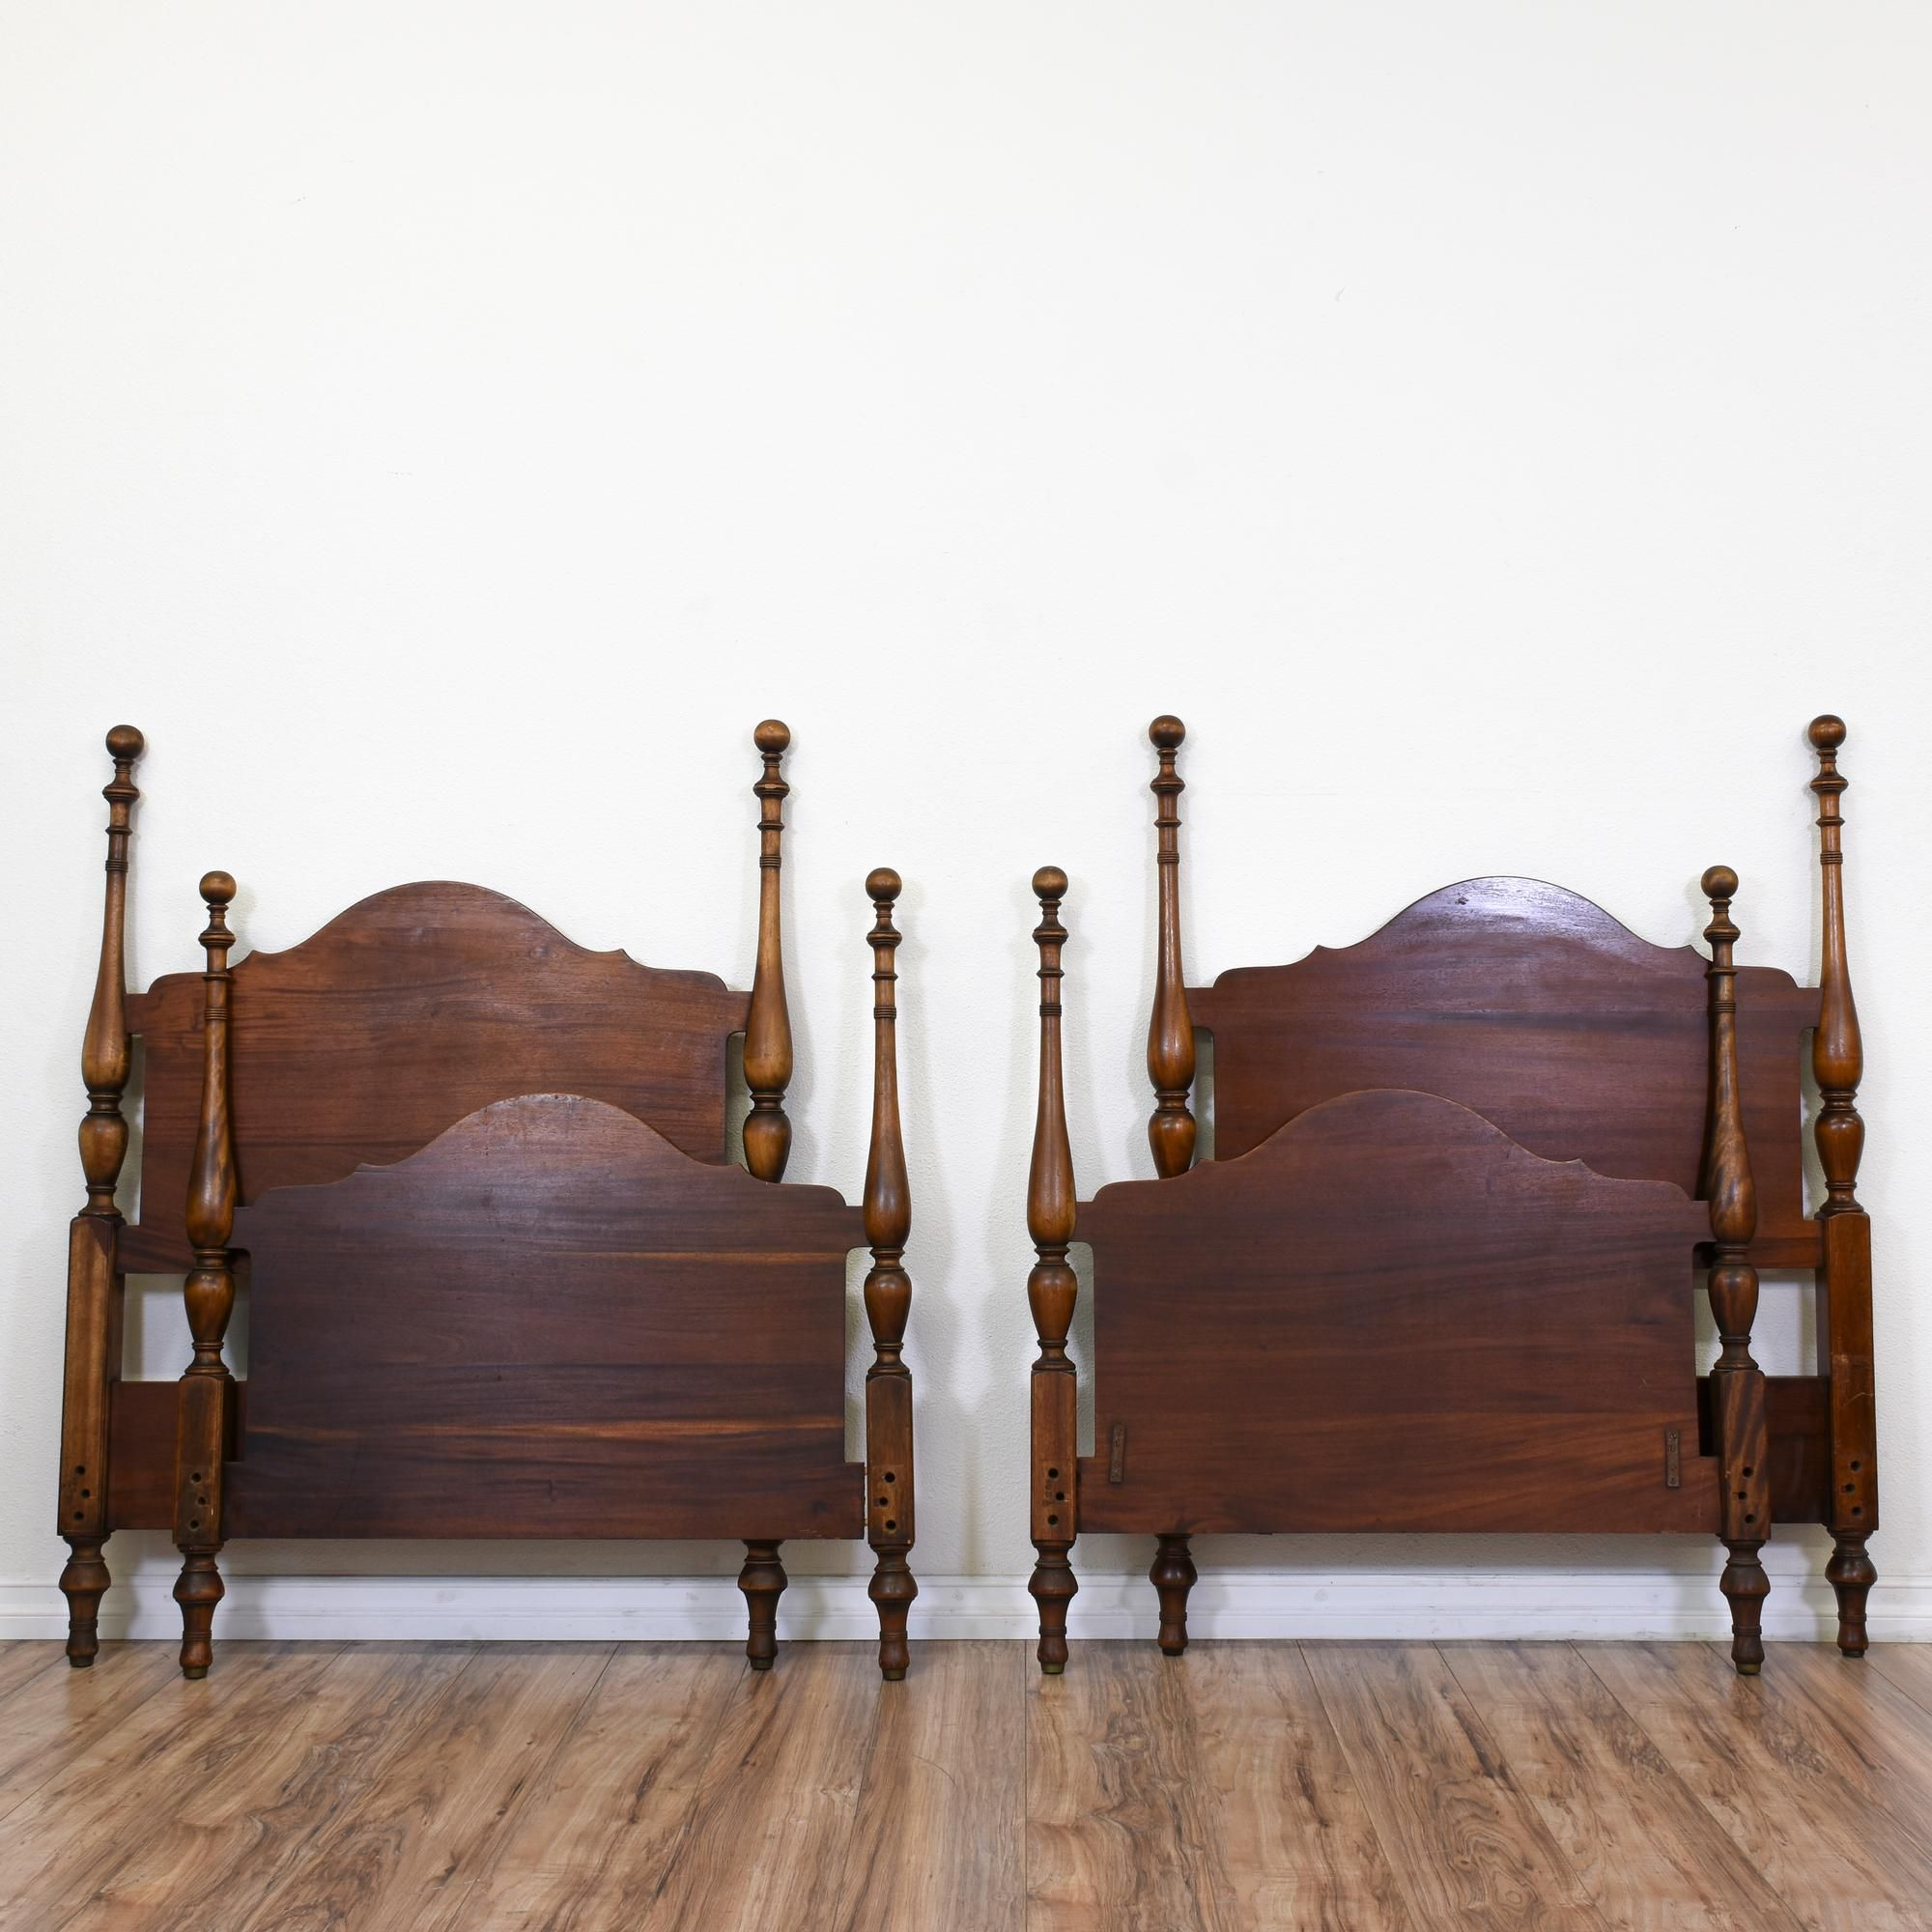 These antique twin beds are featured in a solid wood with a mahogany ...